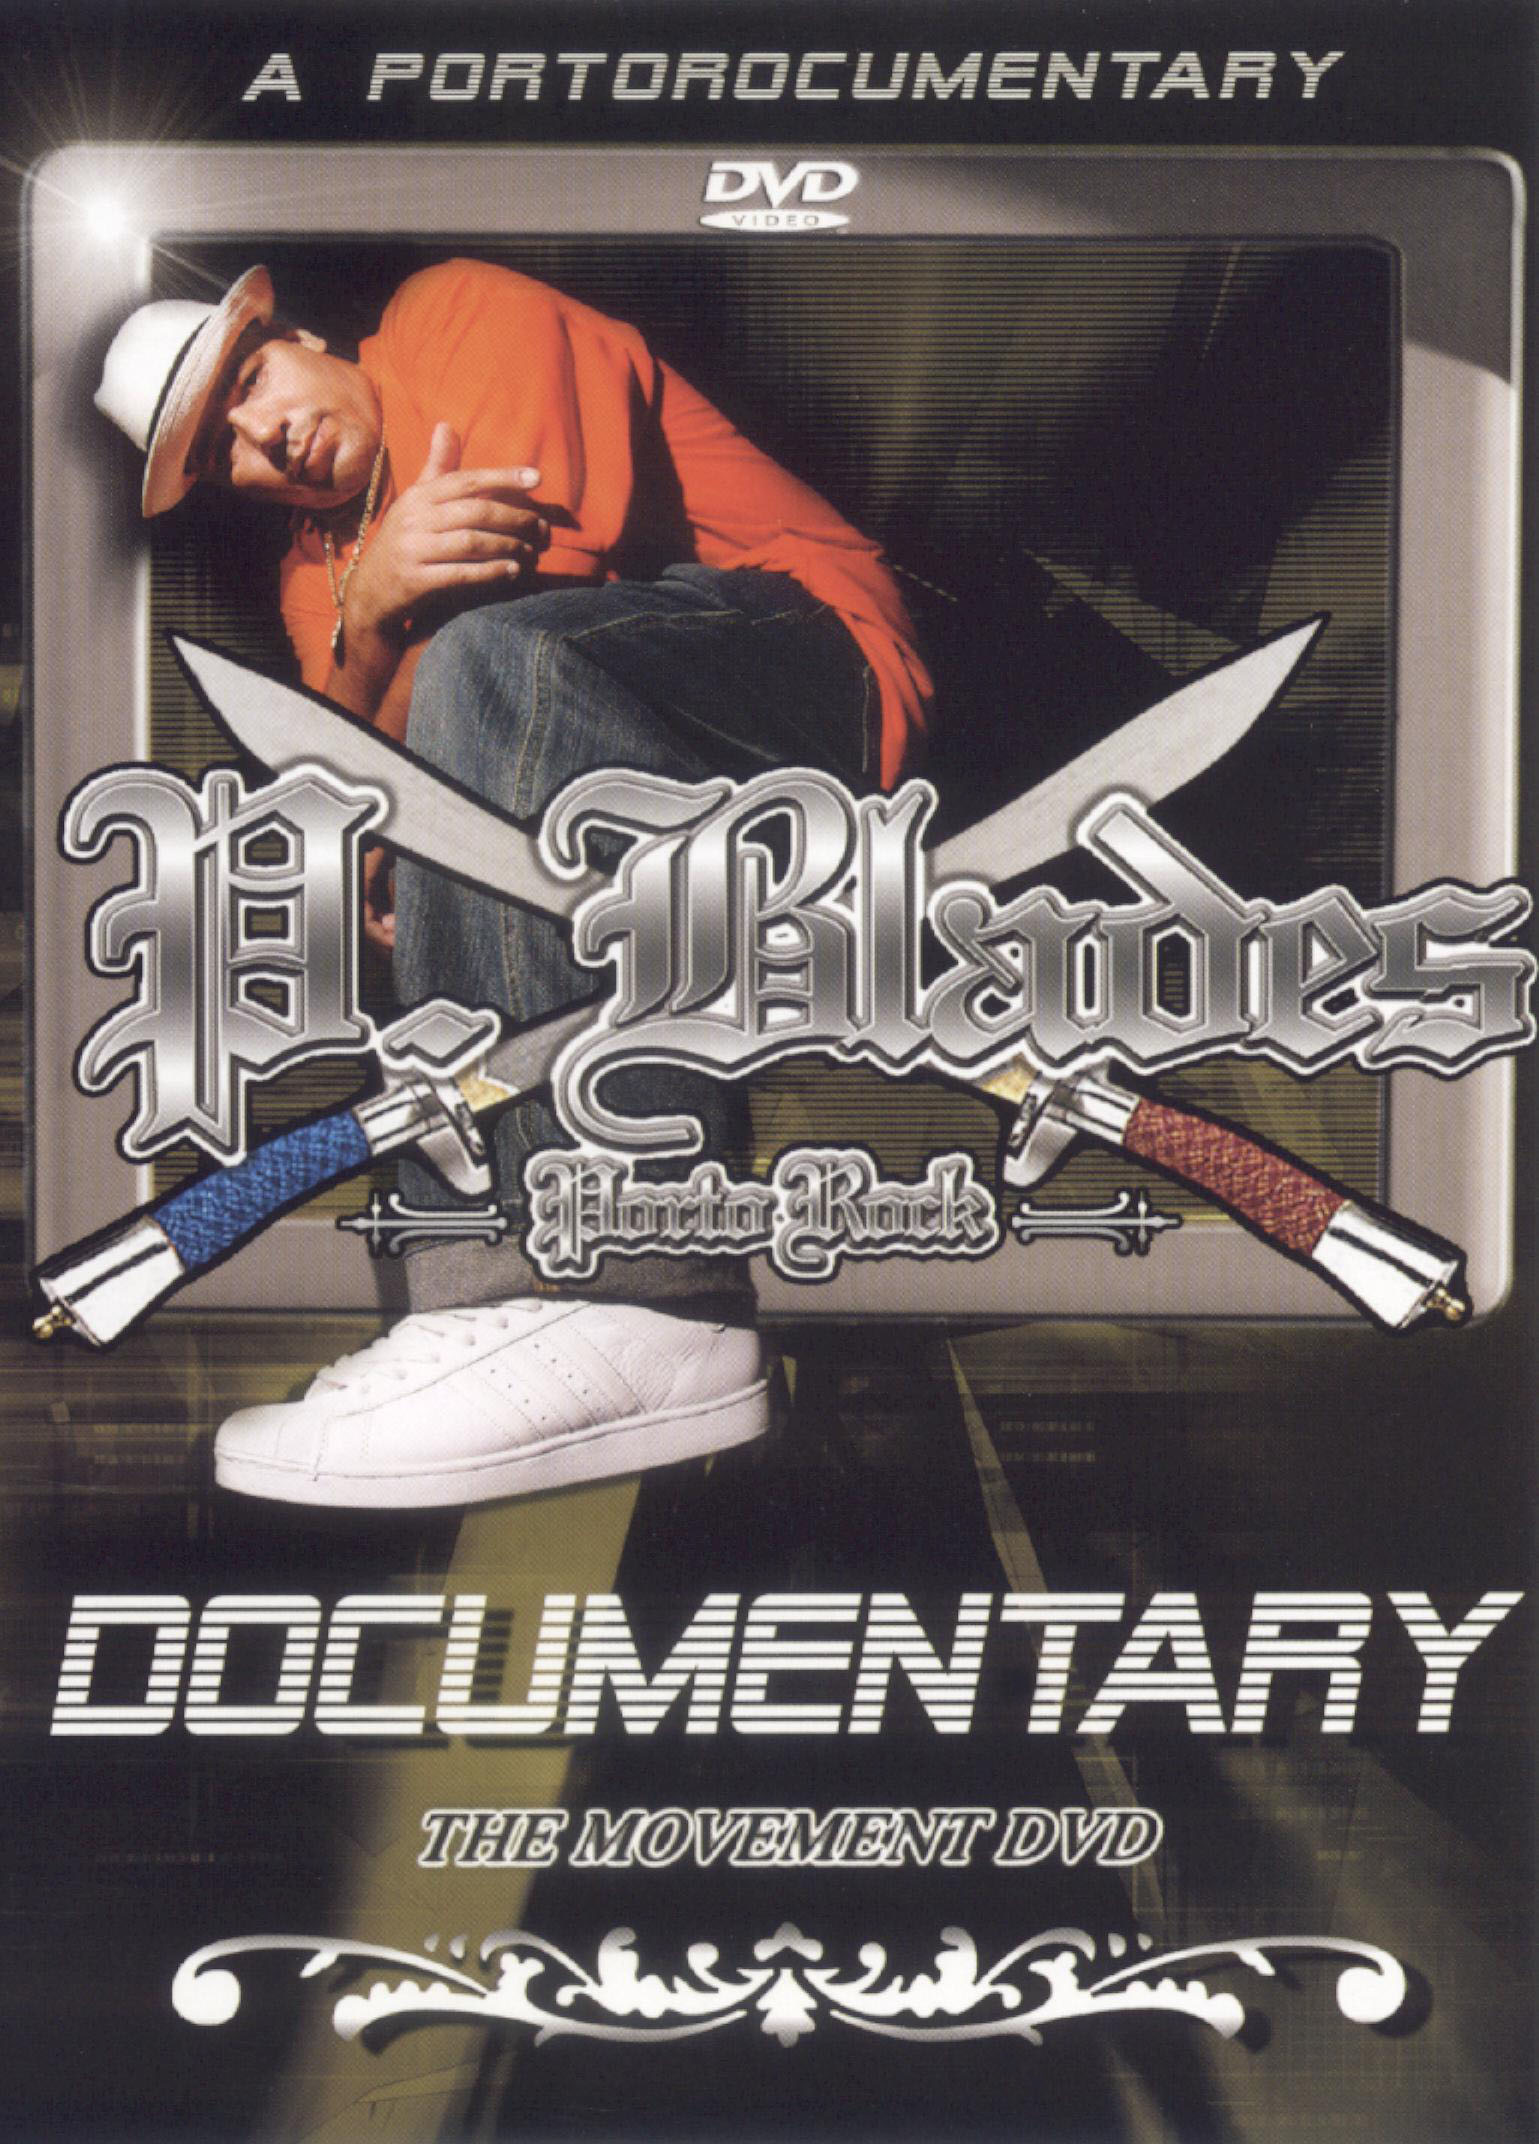 P. Blades: Documentary - The Movement